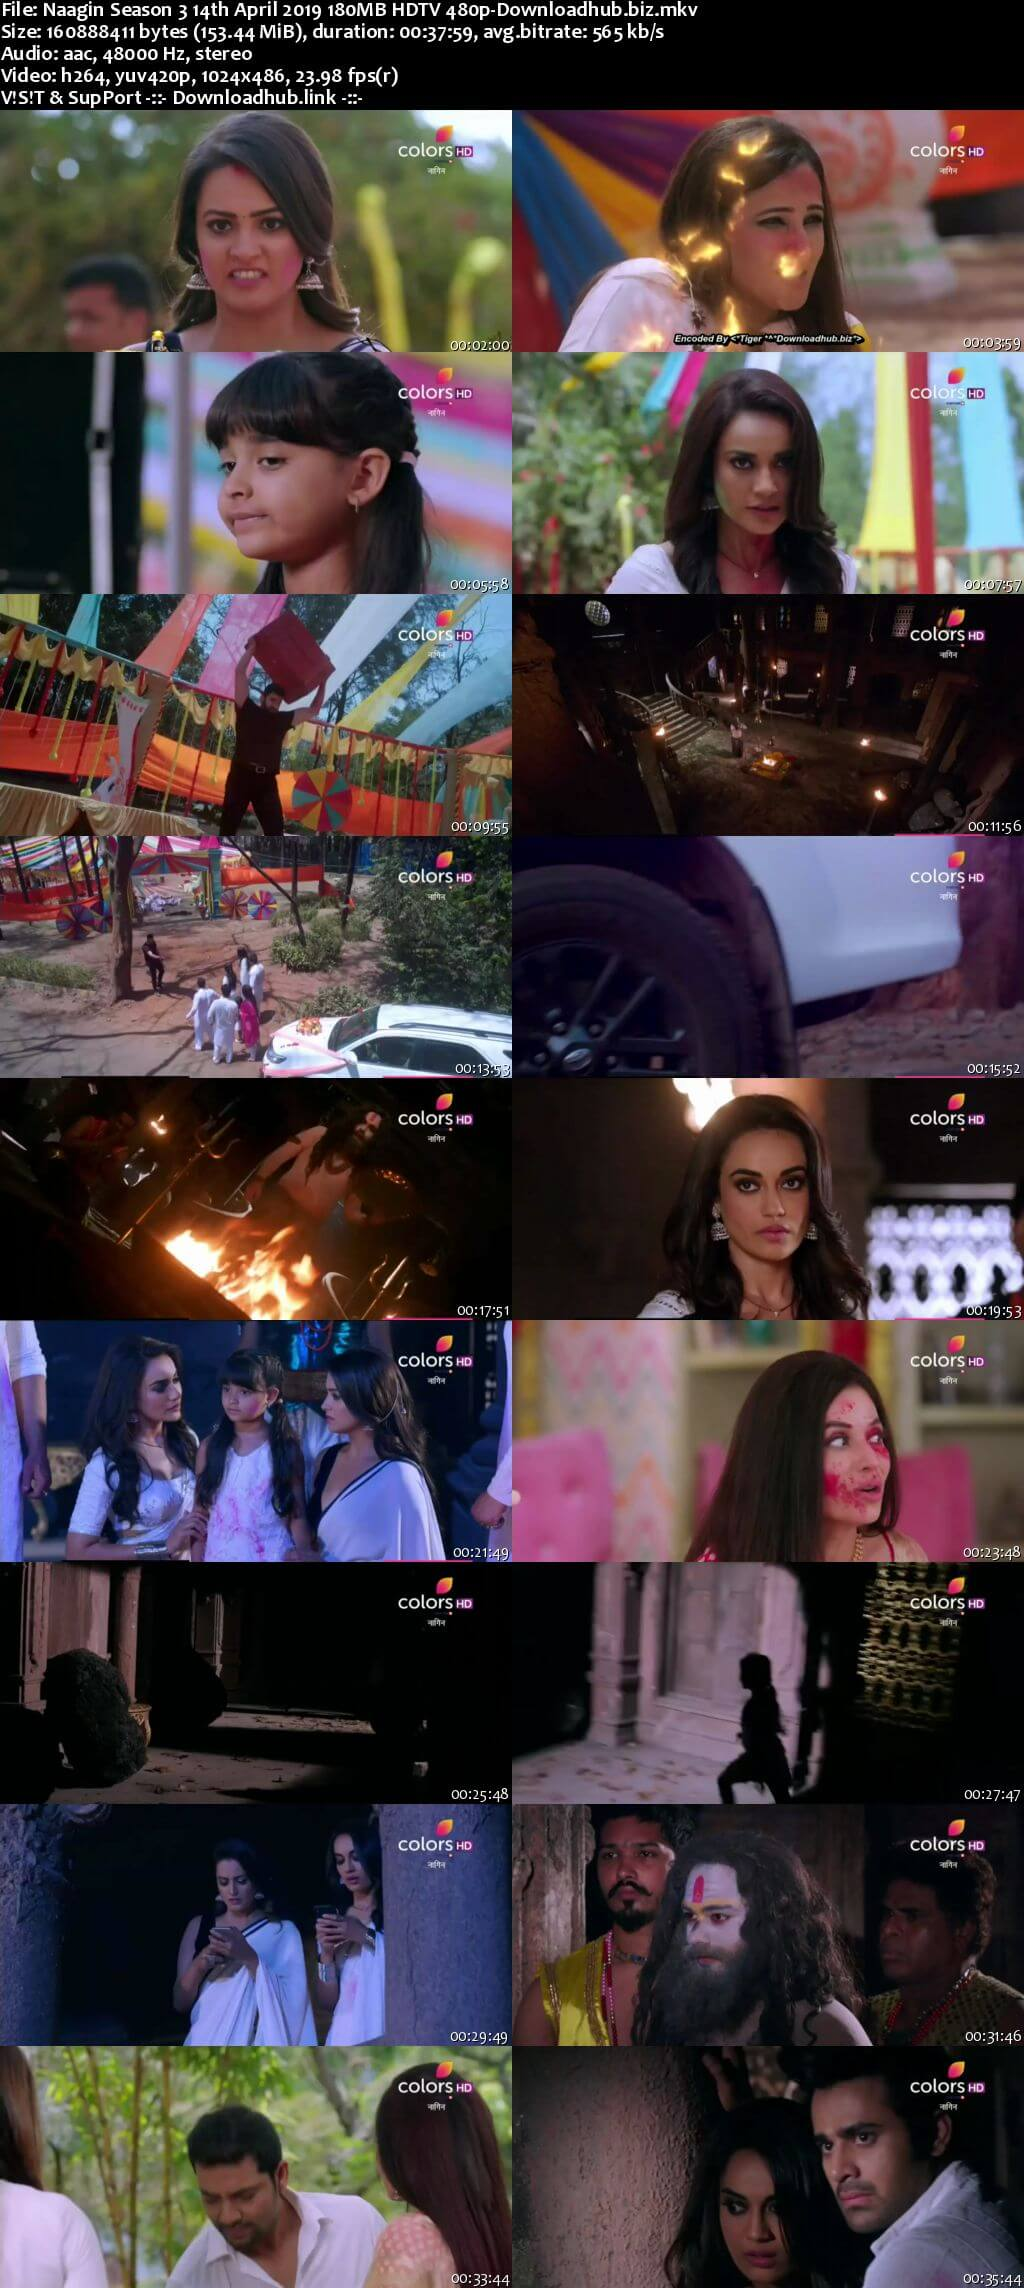 Naagin Season 3 14 April 2019 Episode 89 HDTV 480p